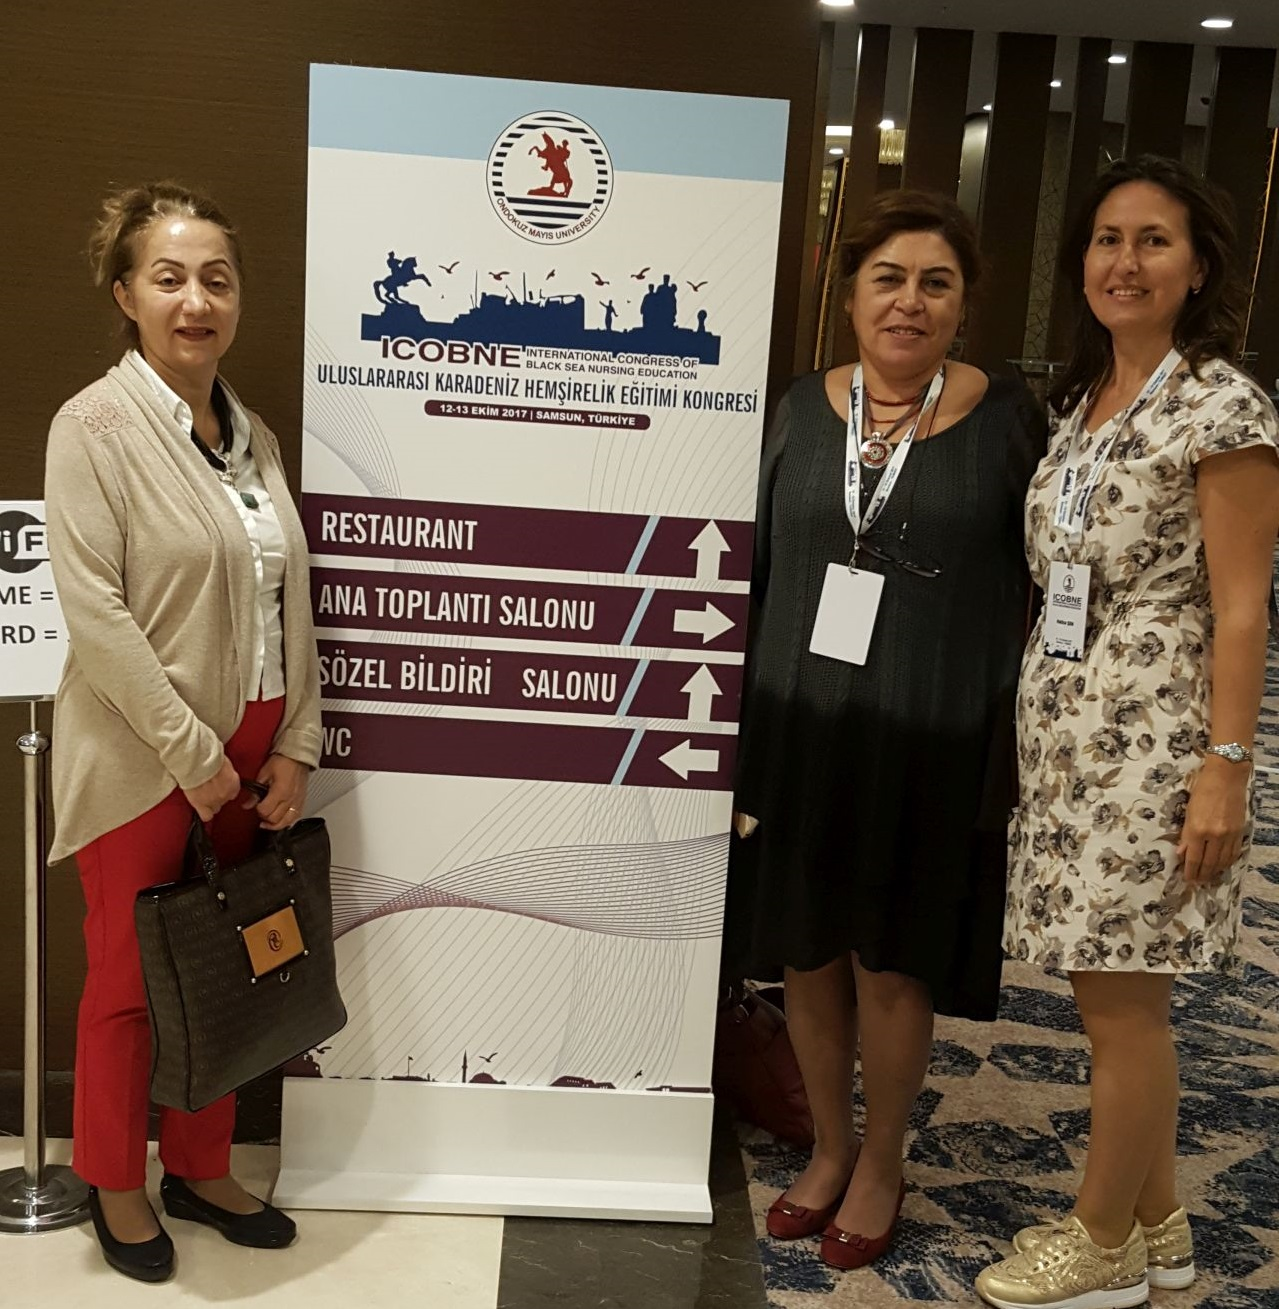 Near East University Faculty of Health Sciences attended an International Congress on Nursing Education in Karadeniz